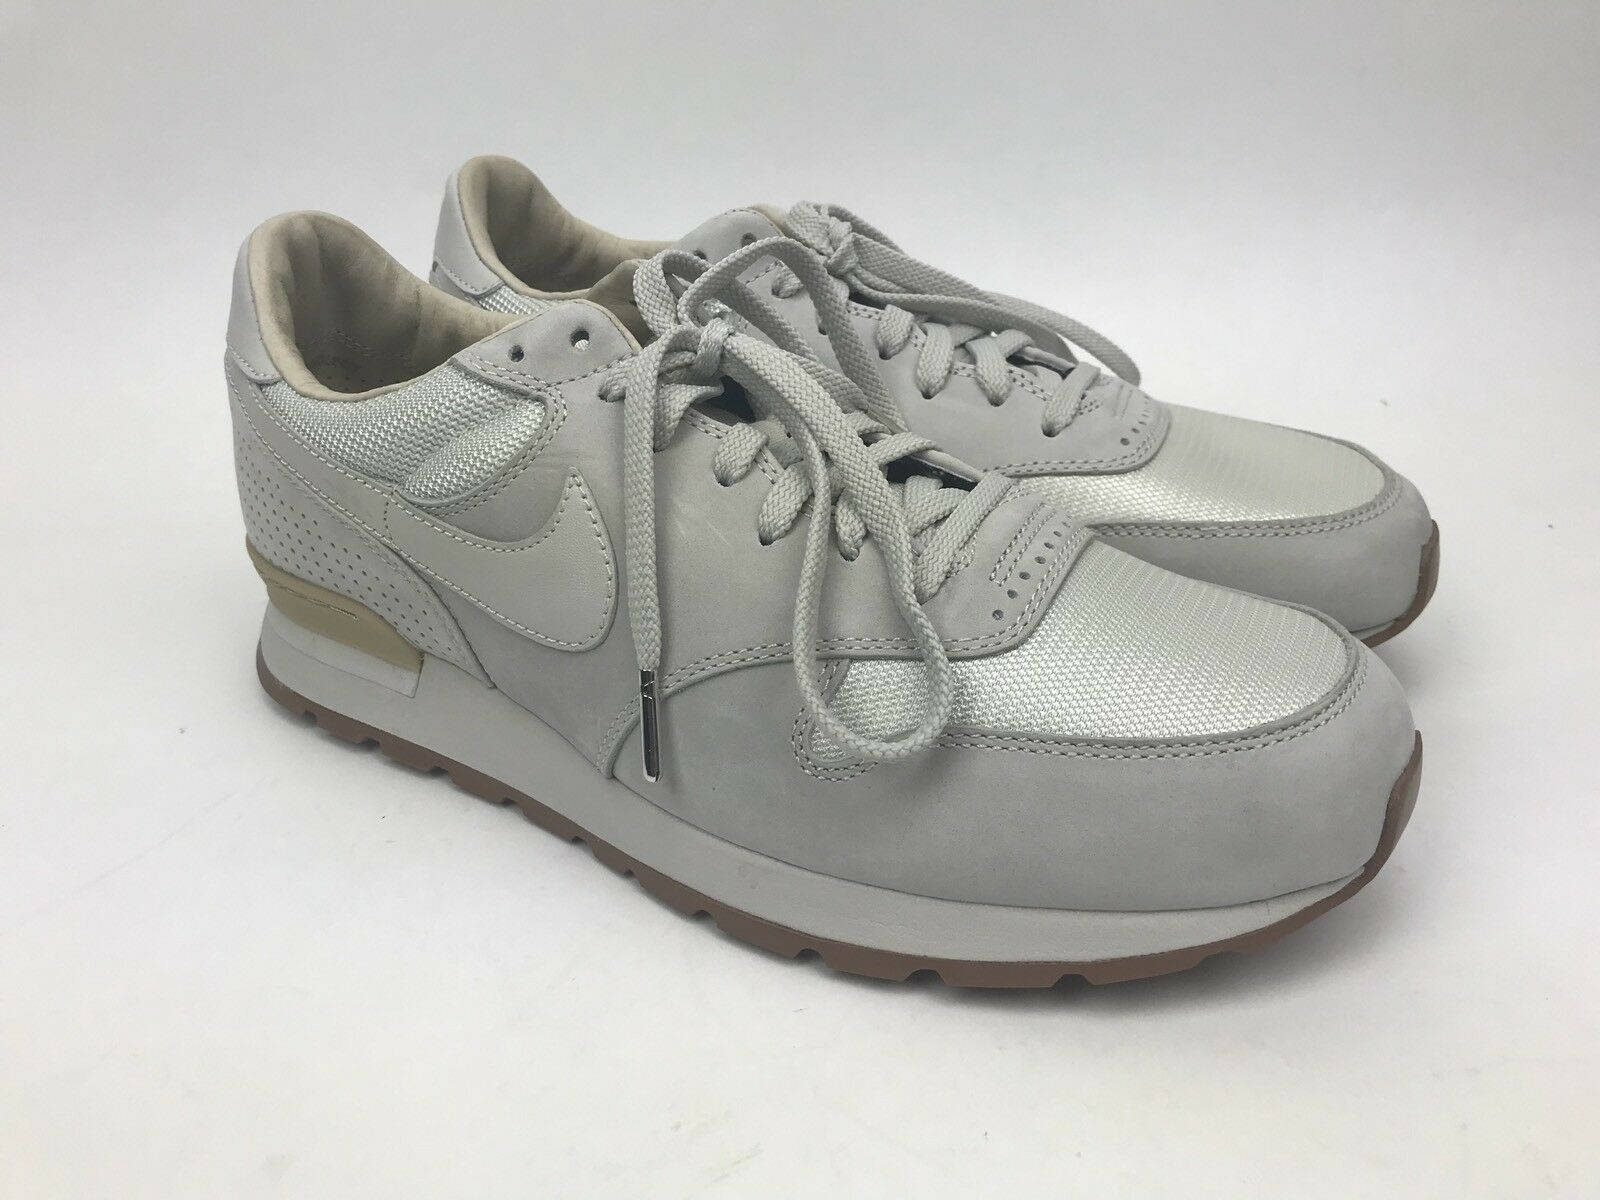 NIKE Air Zoom Epic Luxe Light Bone Running Shoes 876140-001 SIZE 9.5